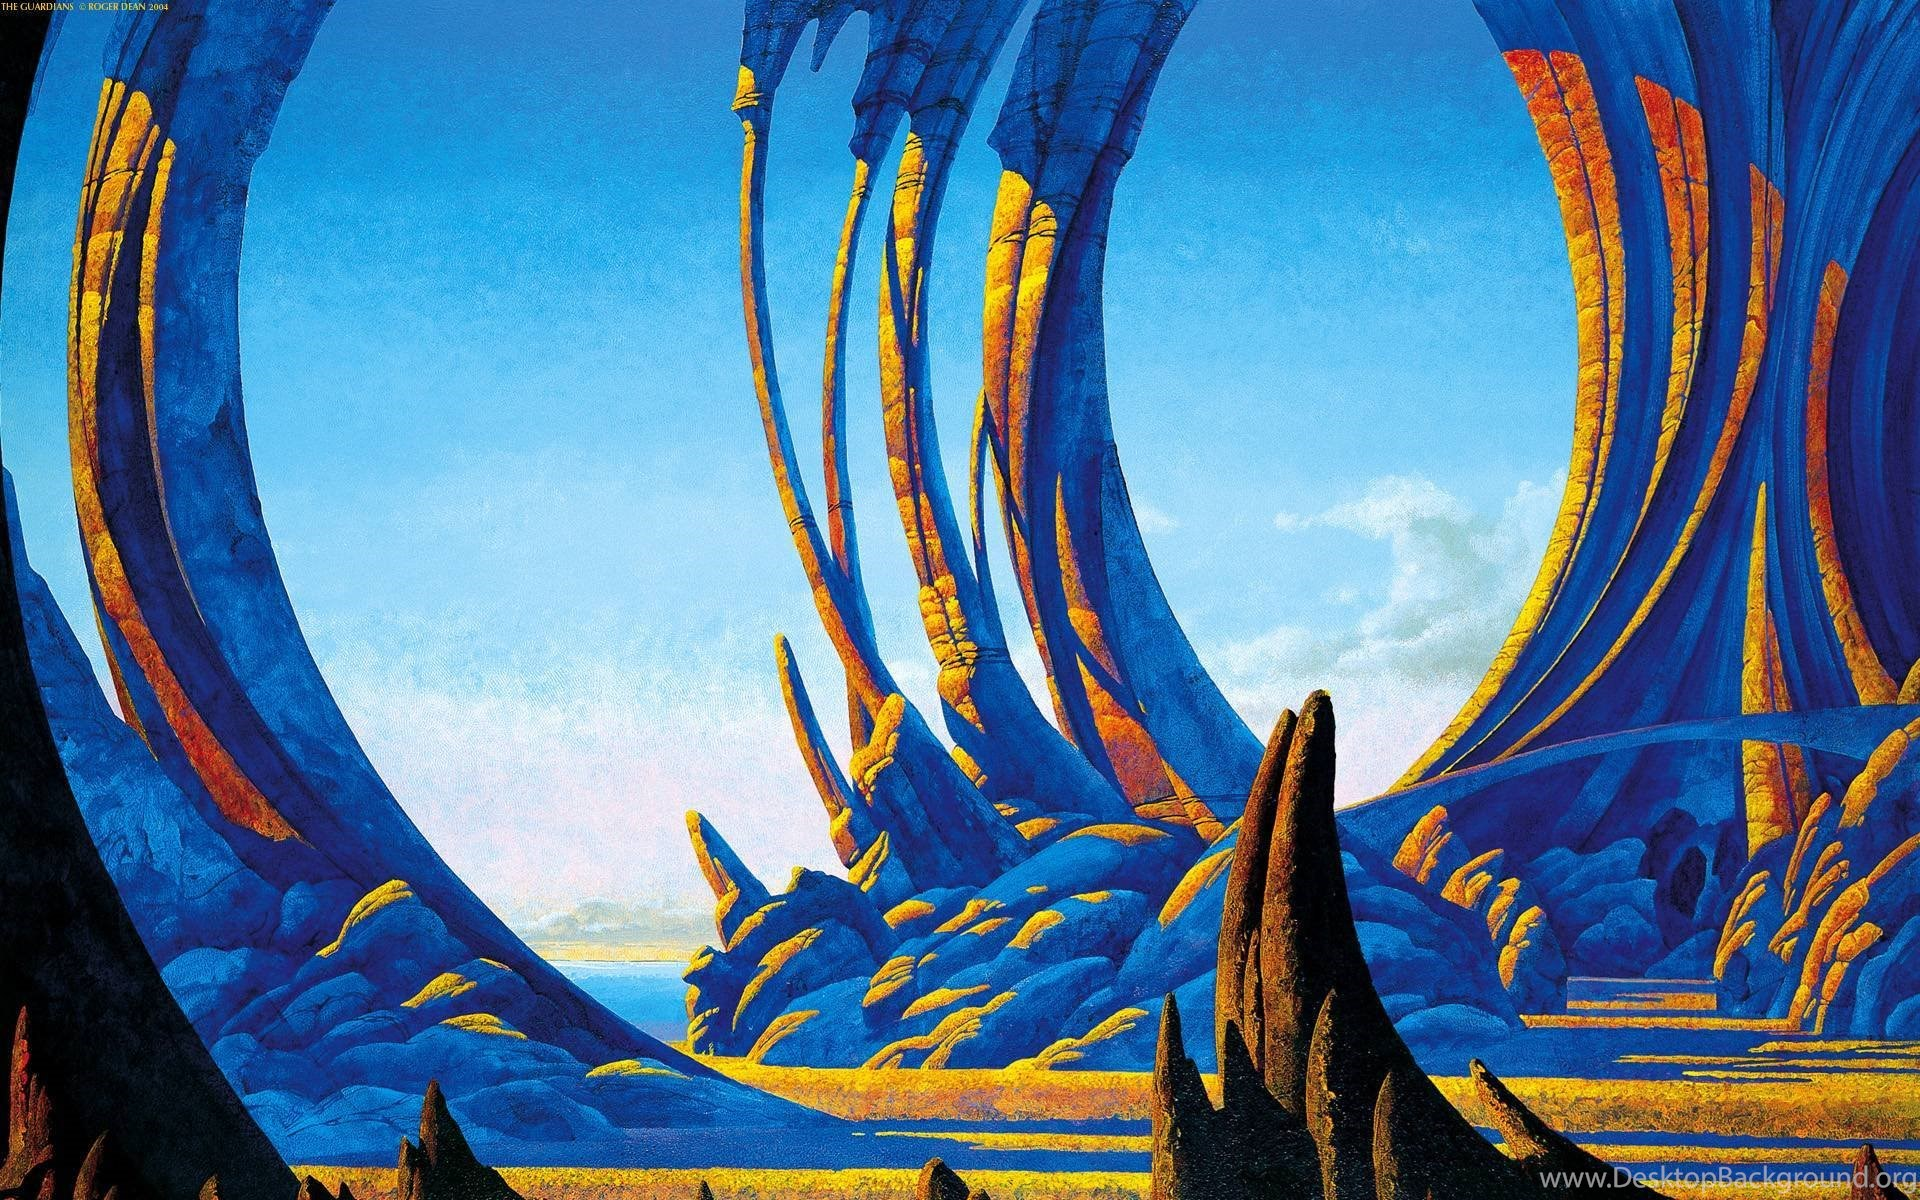 Wallpapers By Roger Dean Wallpapers Abyss Desktop Background